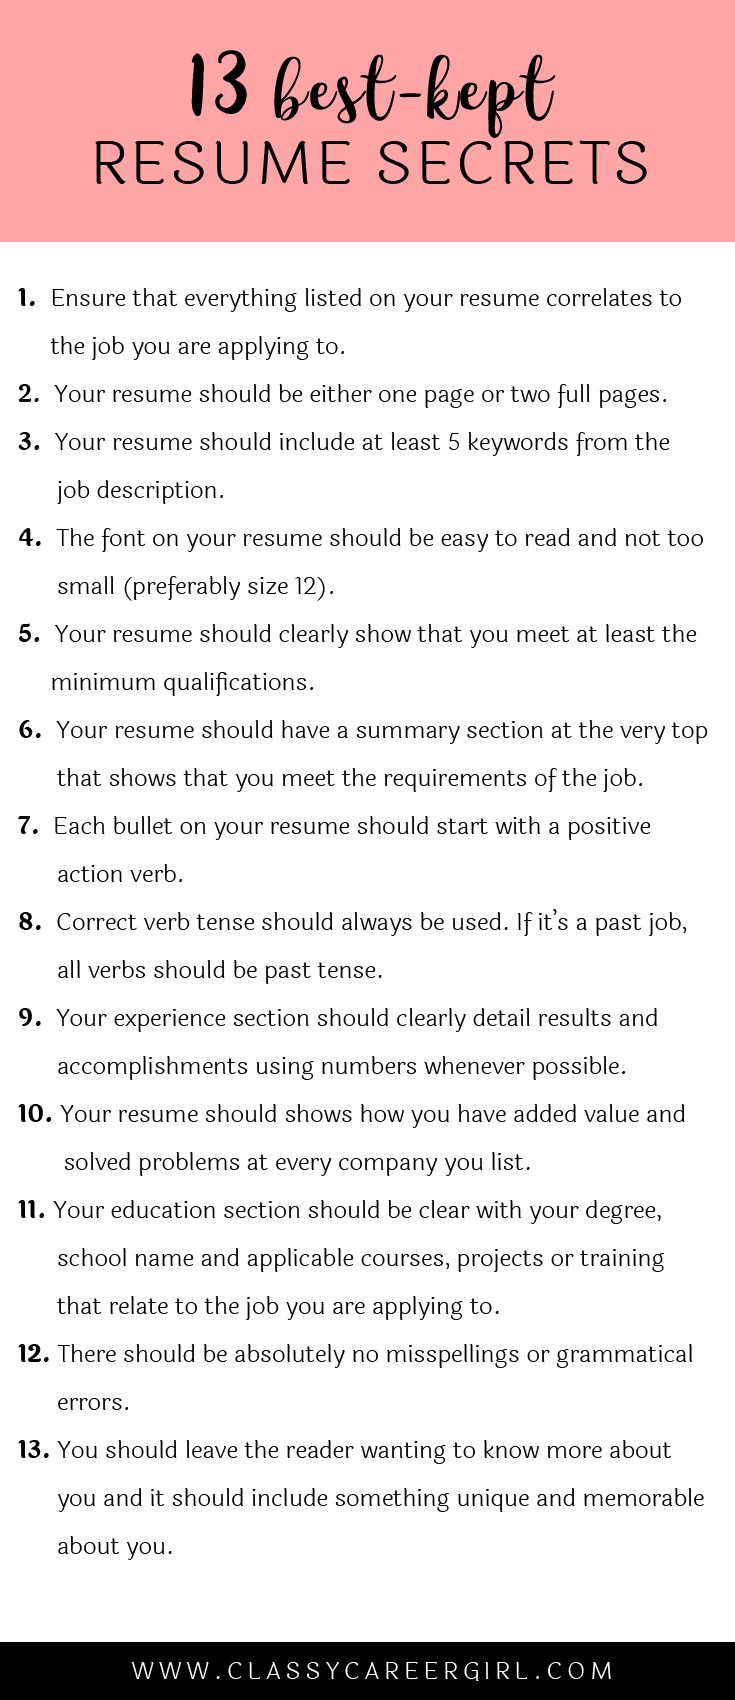 Opposenewapstandardsus  Outstanding  Ideas About Resume On Pinterest  Cv Format Resume  With Lovable Some Hiring Managers Will Toss Your Resume Out If You Dont Know These  With Captivating Career Objective For Resume Also Resume Synonym In Addition Culinary Resume And Should Resume Be One Page As Well As Federal Resume Examples Additionally My Perfect Resume Phone Number From Pinterestcom With Opposenewapstandardsus  Lovable  Ideas About Resume On Pinterest  Cv Format Resume  With Captivating Some Hiring Managers Will Toss Your Resume Out If You Dont Know These  And Outstanding Career Objective For Resume Also Resume Synonym In Addition Culinary Resume From Pinterestcom